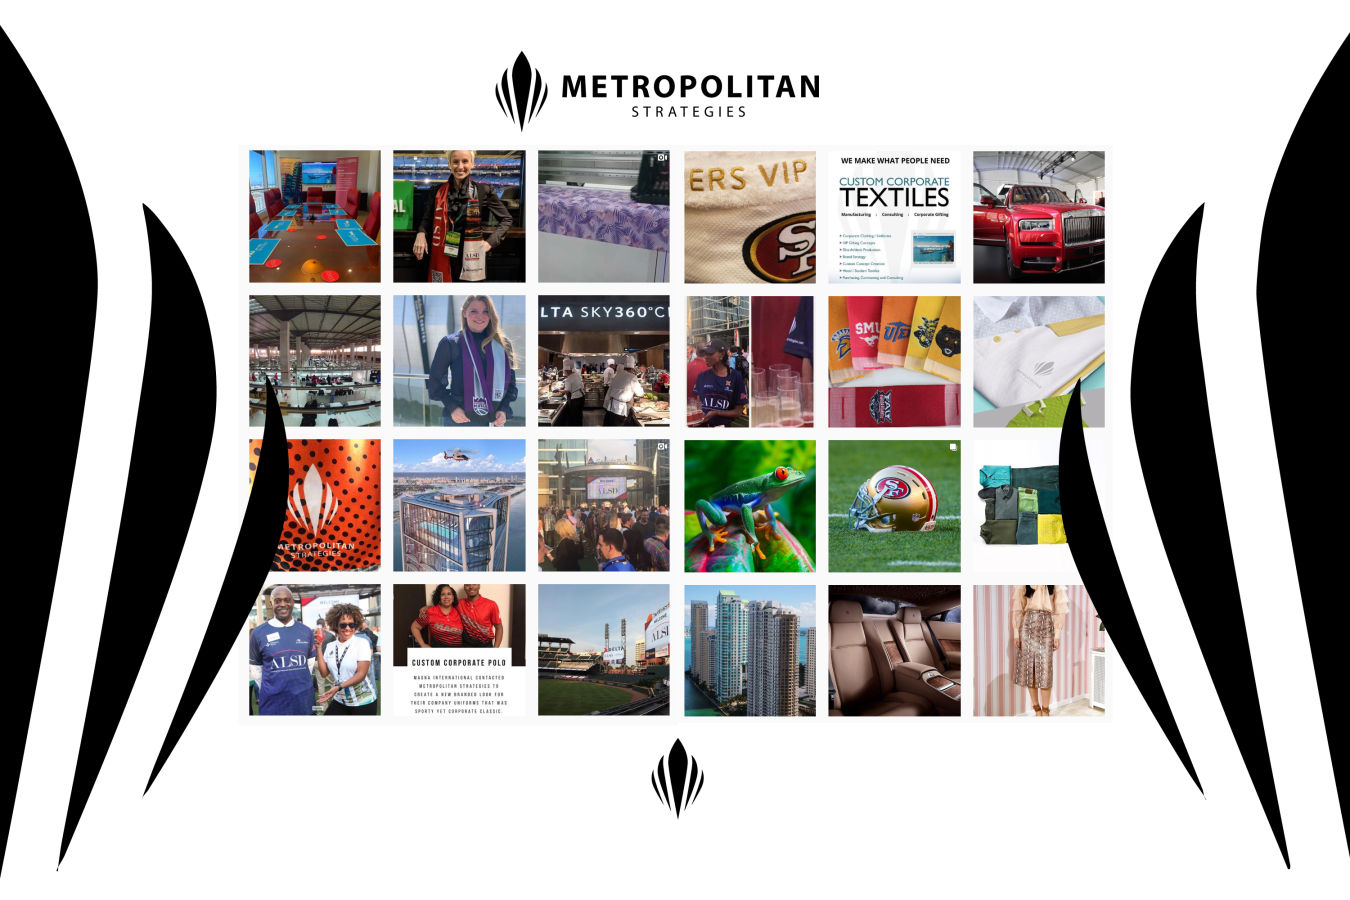 Metropolitan Strategies Visuals